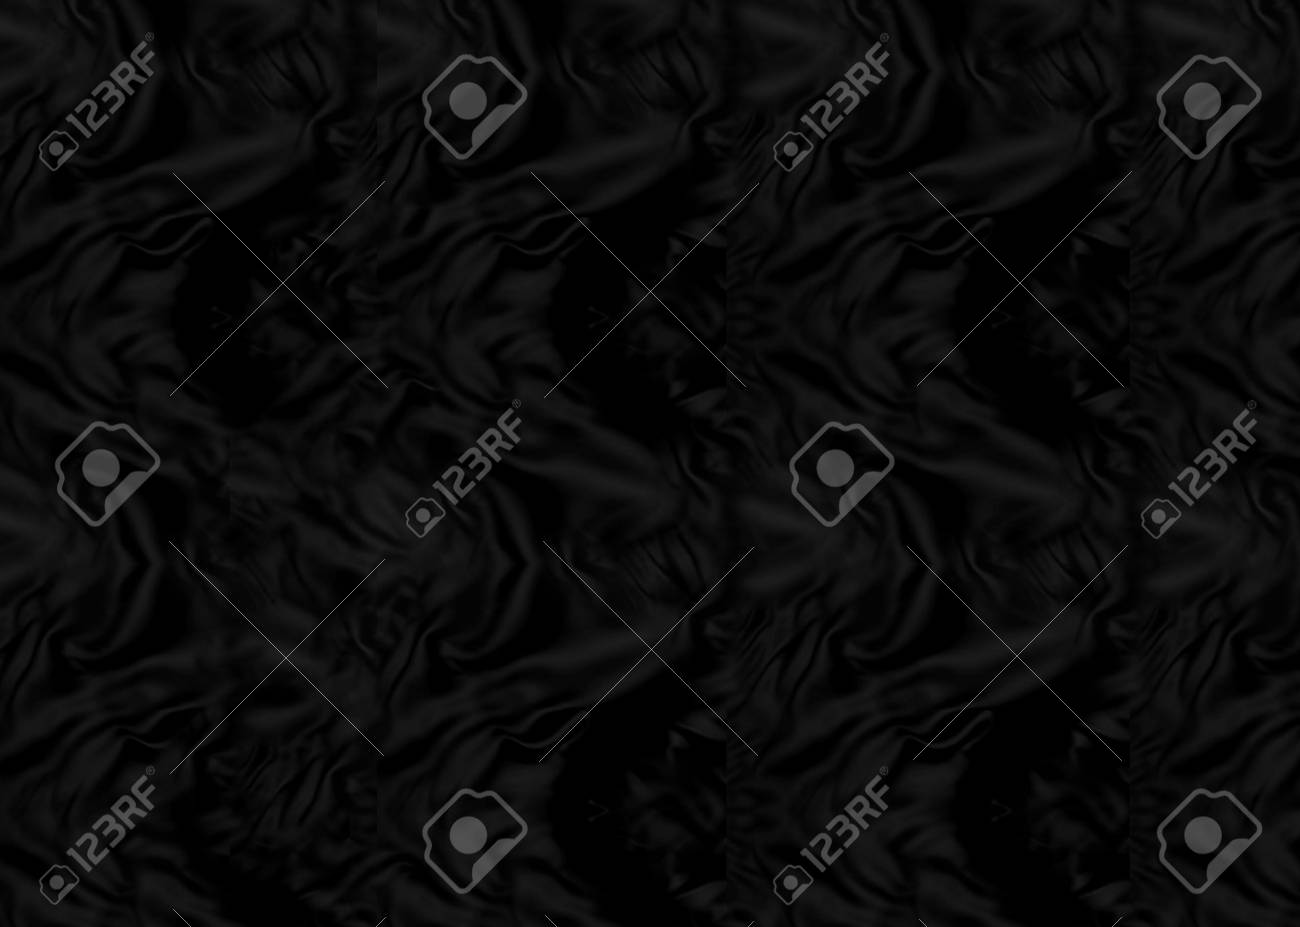 Black velvet texture with smooth light reflection, luxury background for jewelry and glittering objects Stock Photo - 73088507